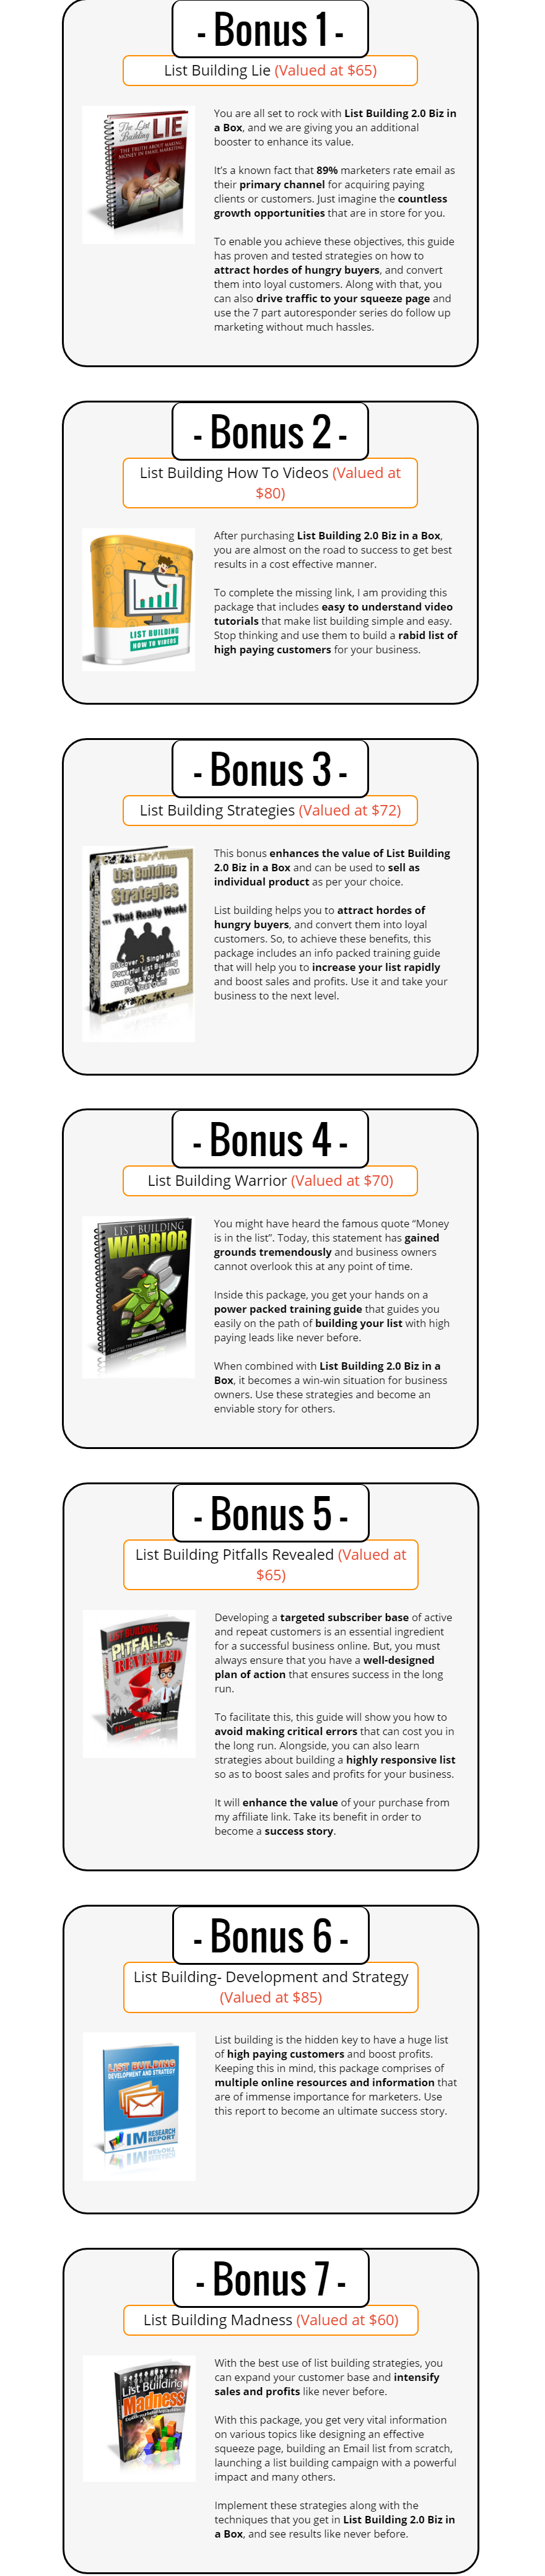 List Building V2 Biz in a Box Monster PLR Bonuses